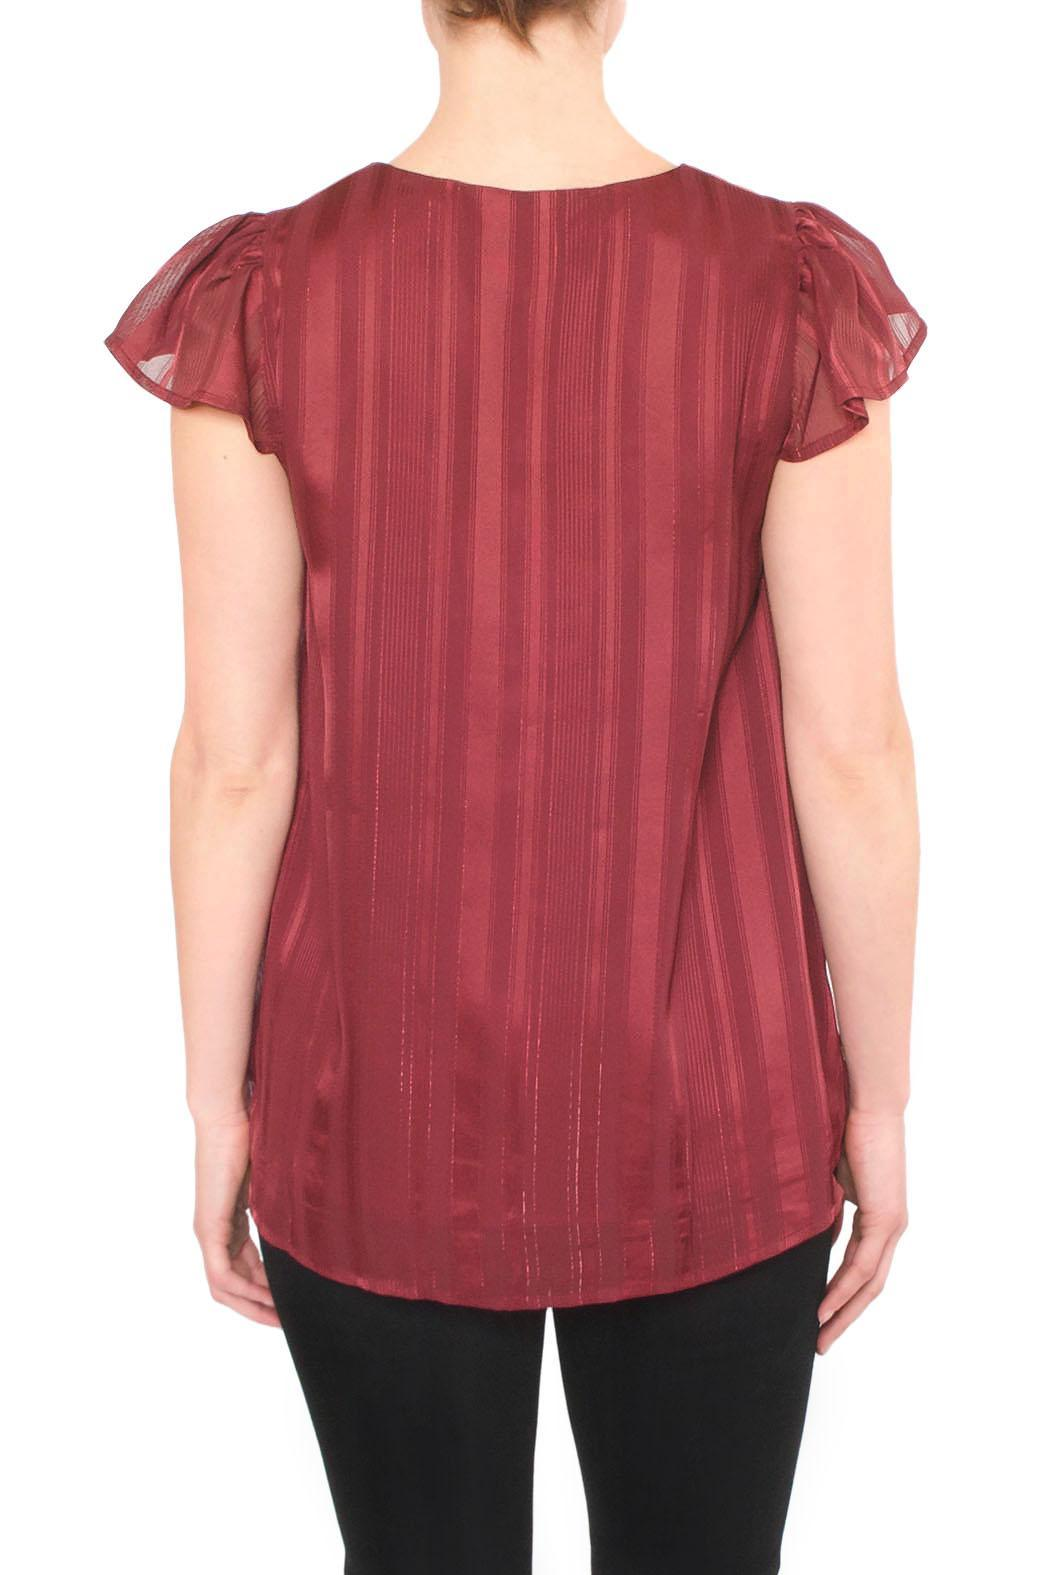 J.O.A. Burgundy Red Blouse - Side Cropped Image